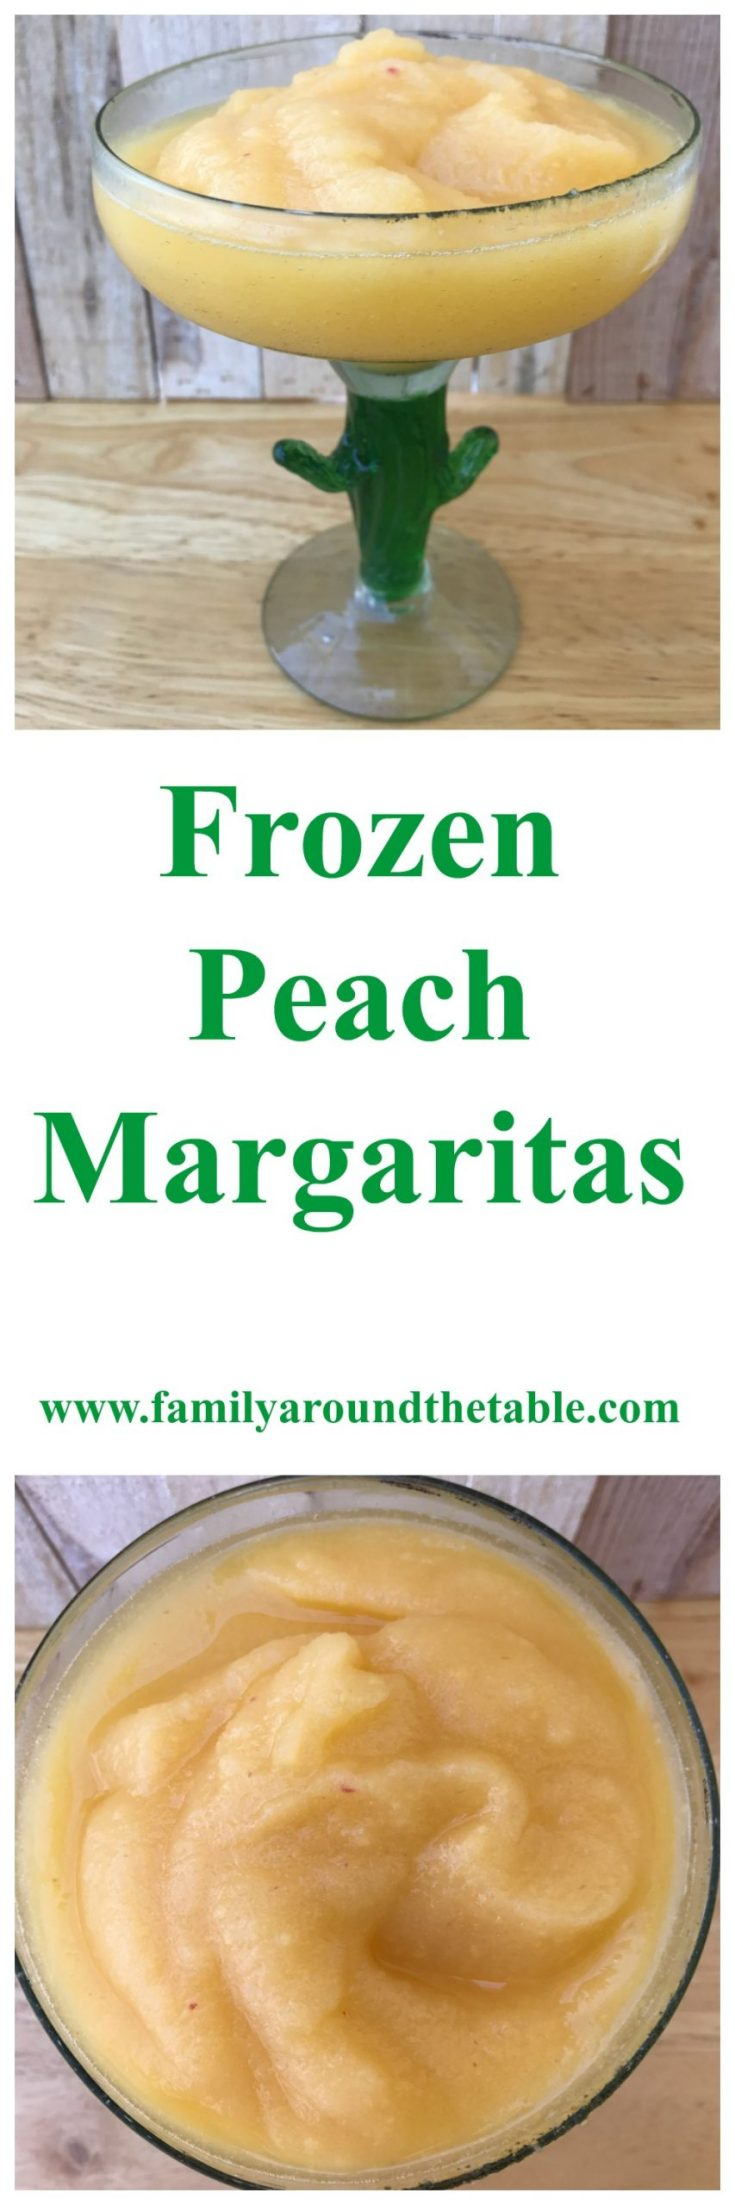 Frozen peach margaritas will cool you off on any hot summer day.